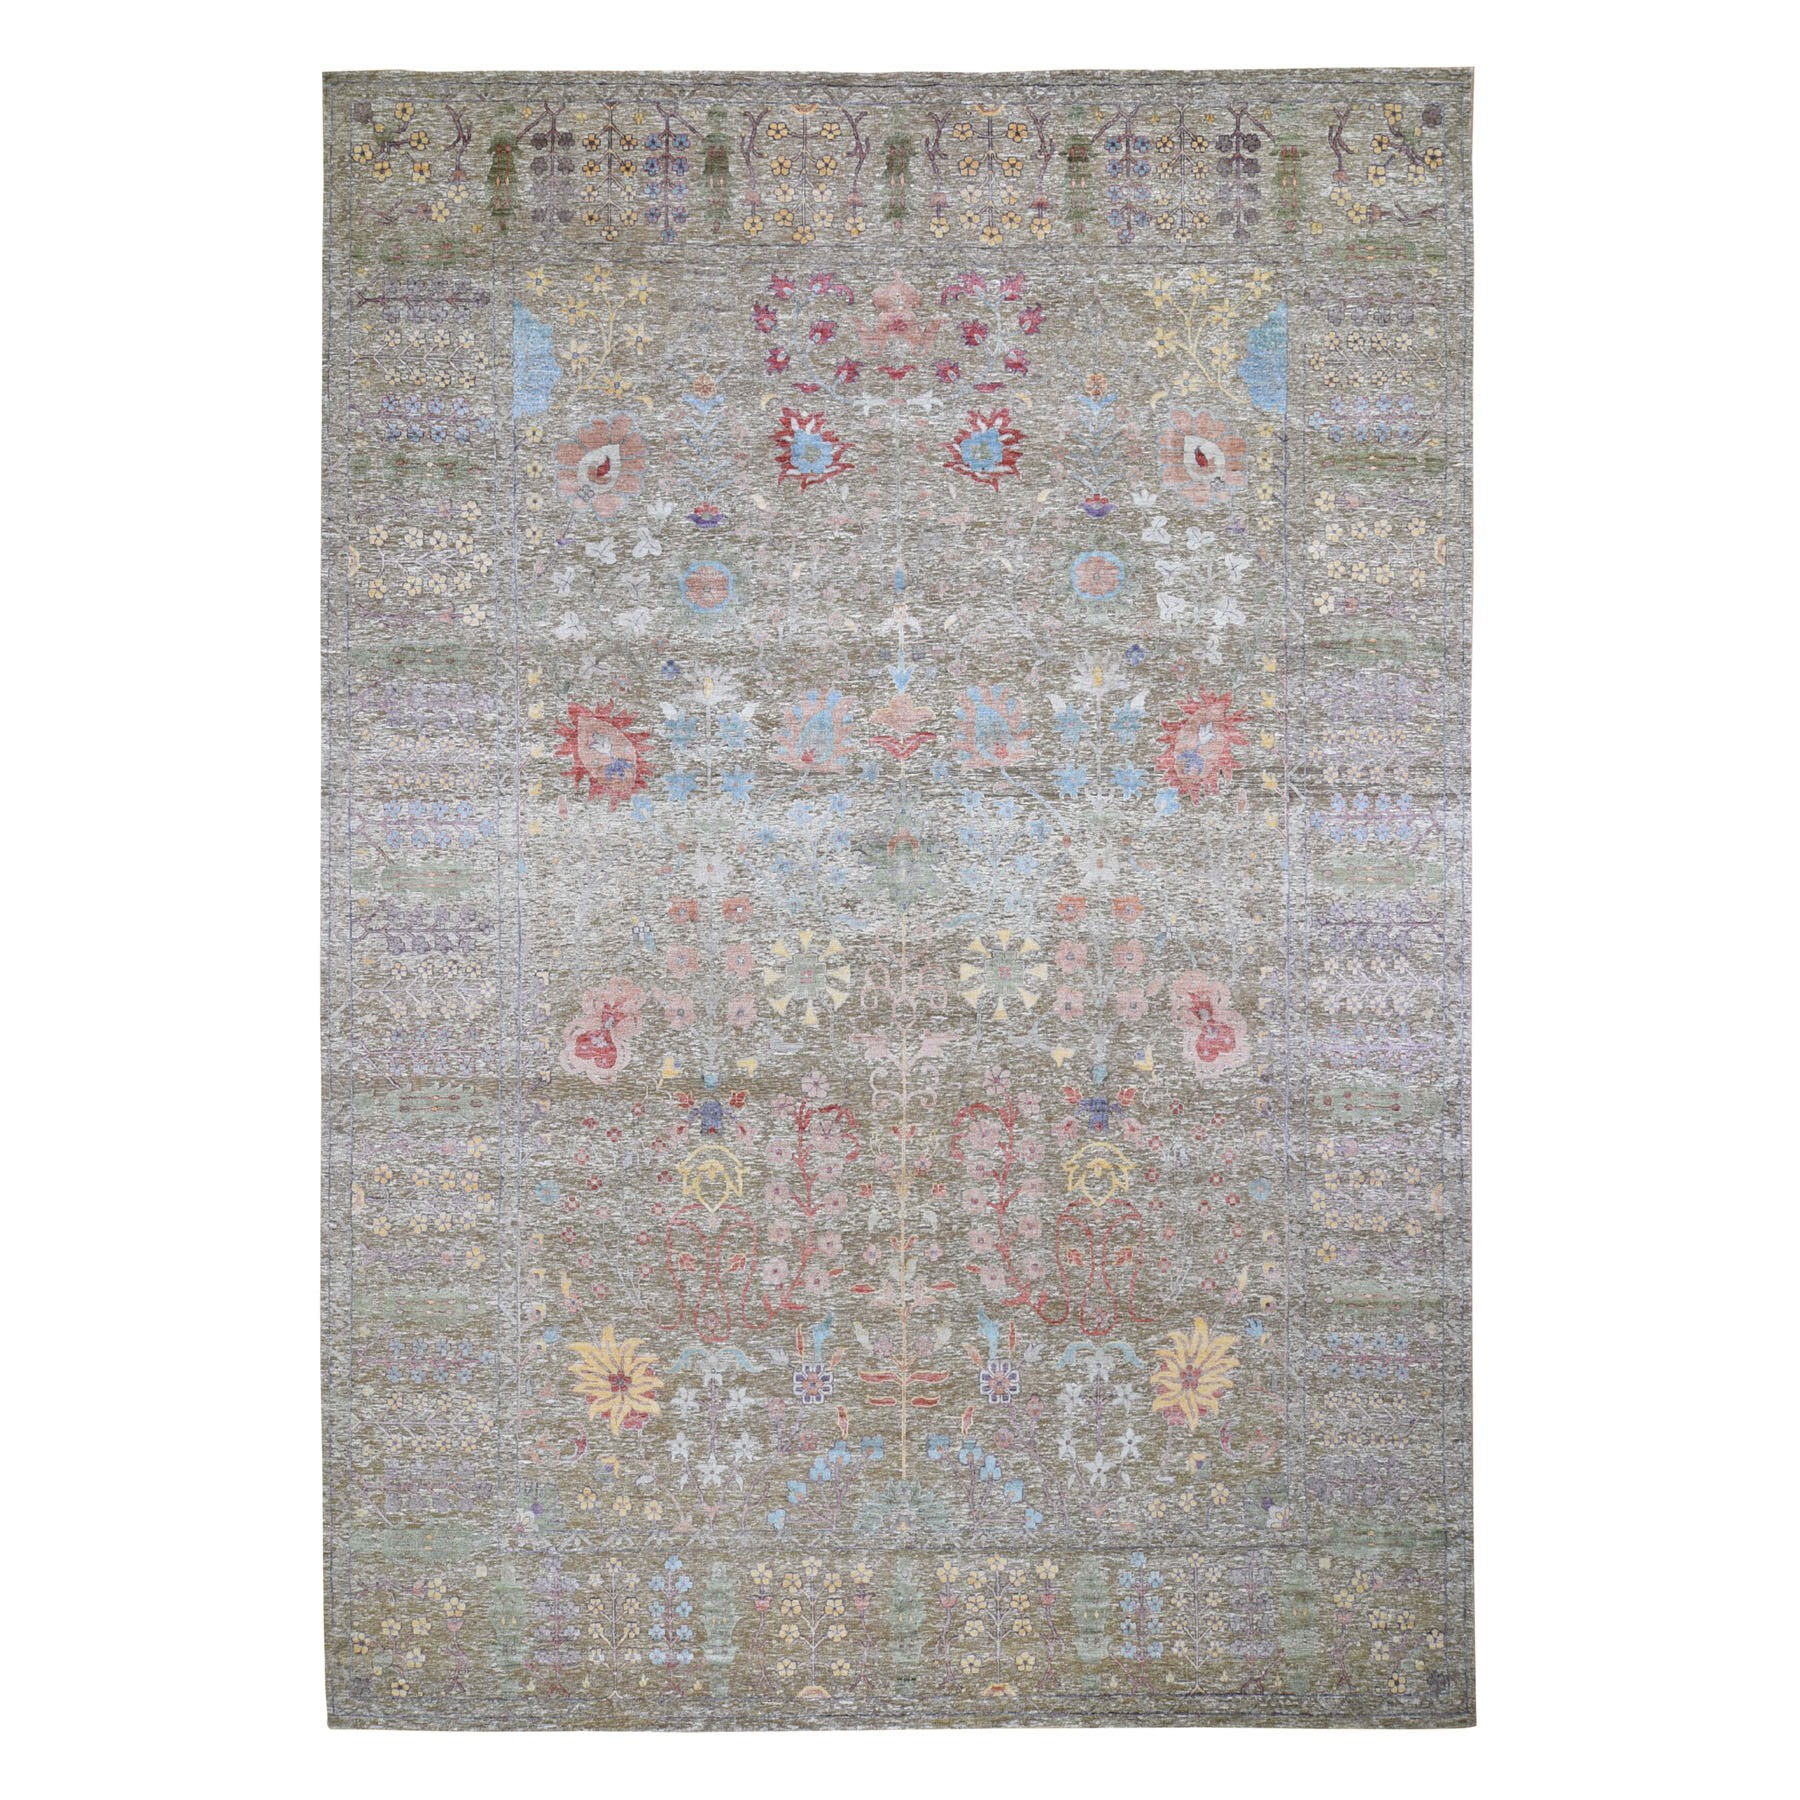 10'X14' Honey Brown Silk With Textured Wool Vaze Design Hand Knotted Oriental Rug moad8cd9